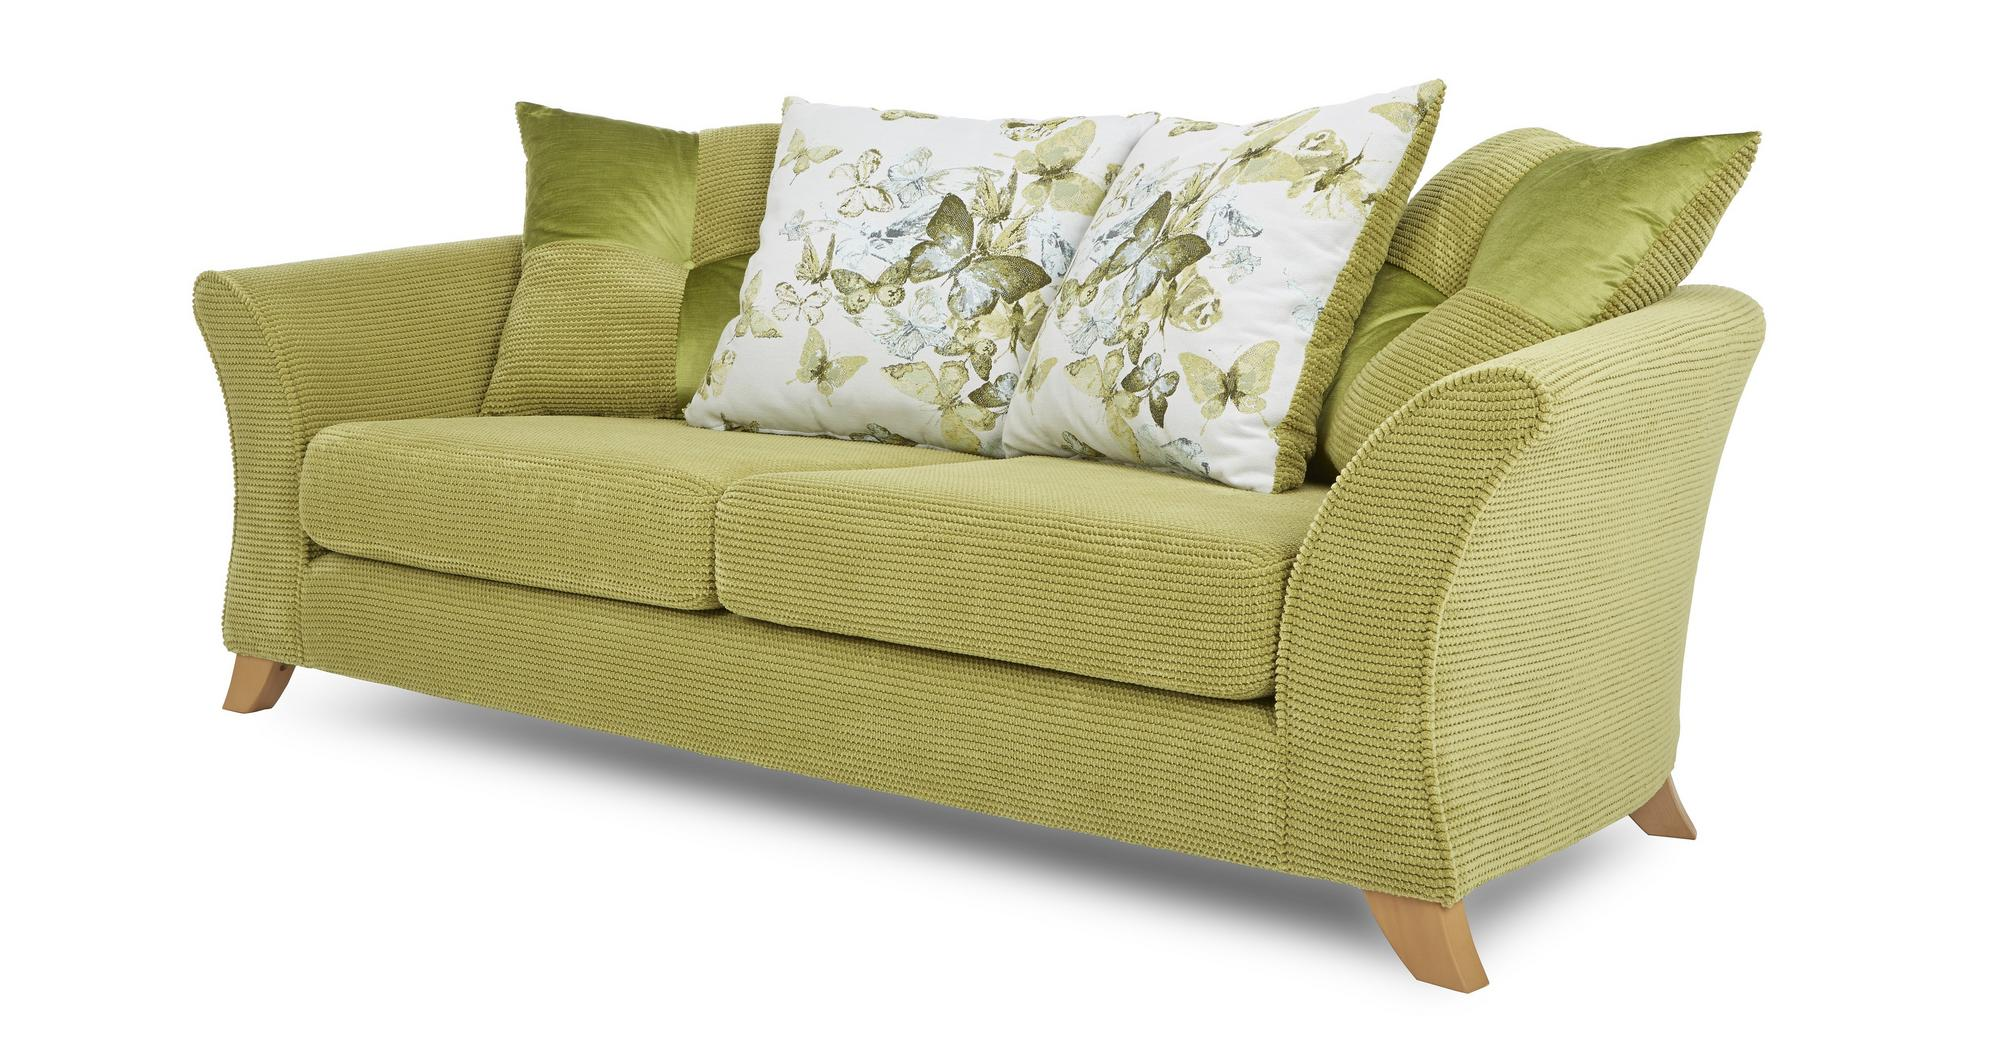 Dfs Corinne Lime Green Fabric 3 Seater Pillow Back Sofa Ebay